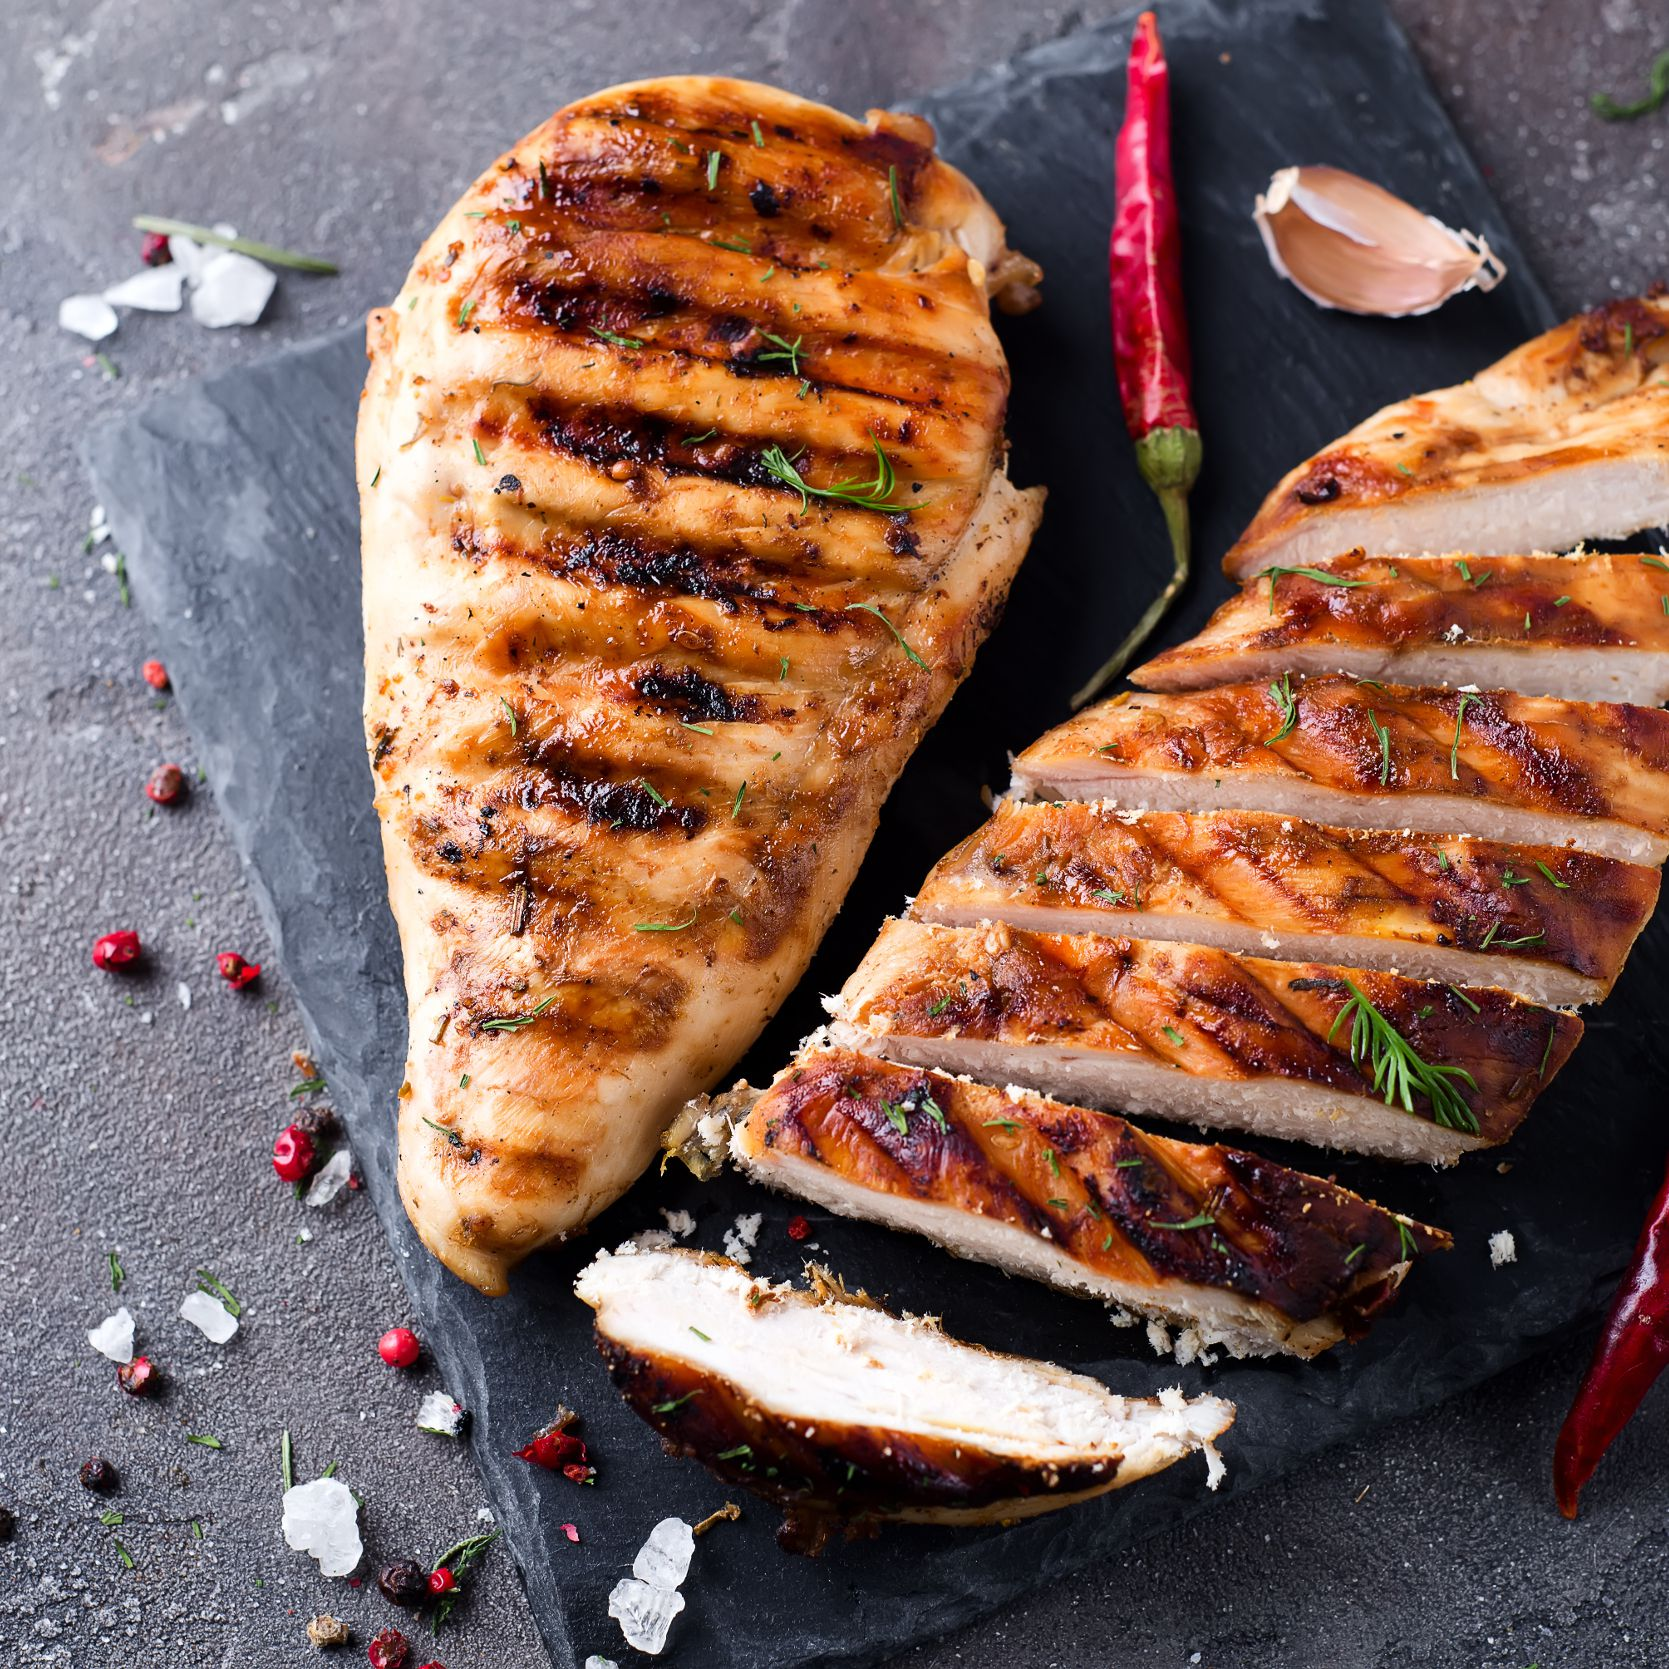 The 7 Biggest Mistakes When Cooking Chicken Breasts